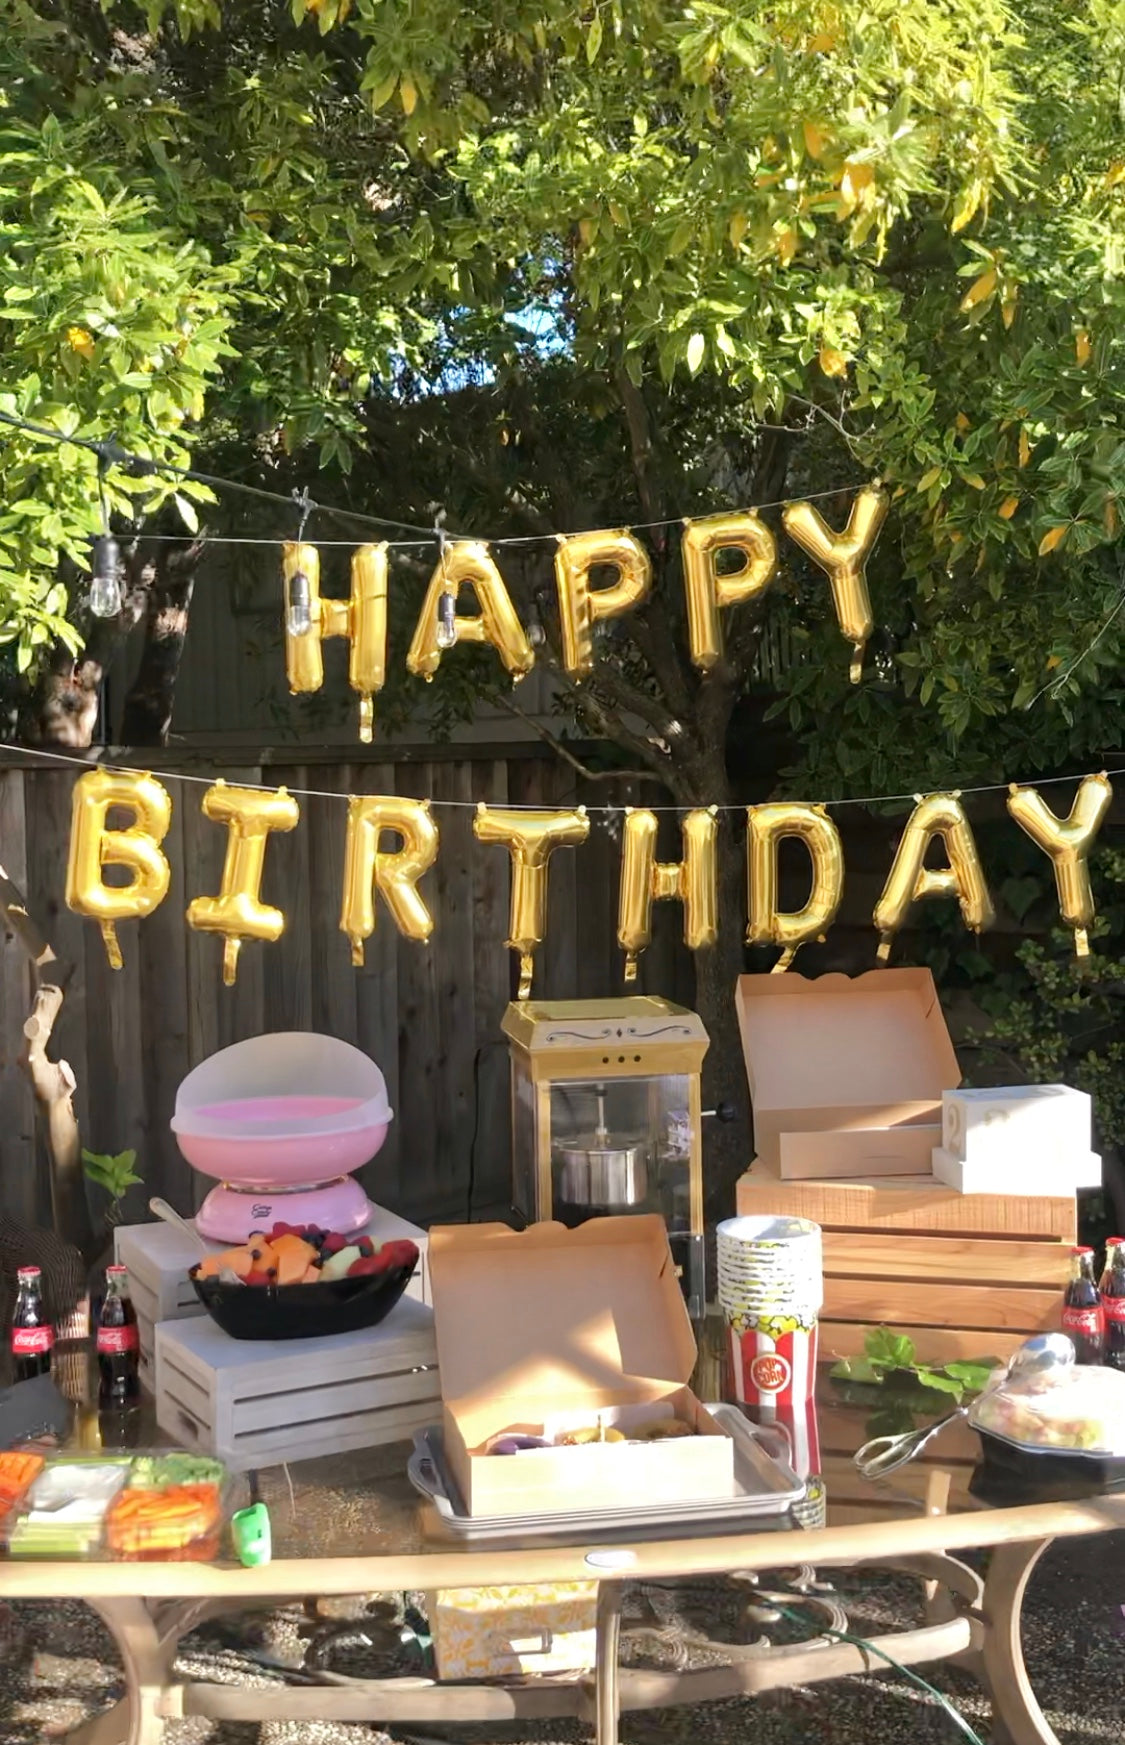 Outdoor Movie Night Ideas - Backyard Birthday Ideas - Pretty Collected